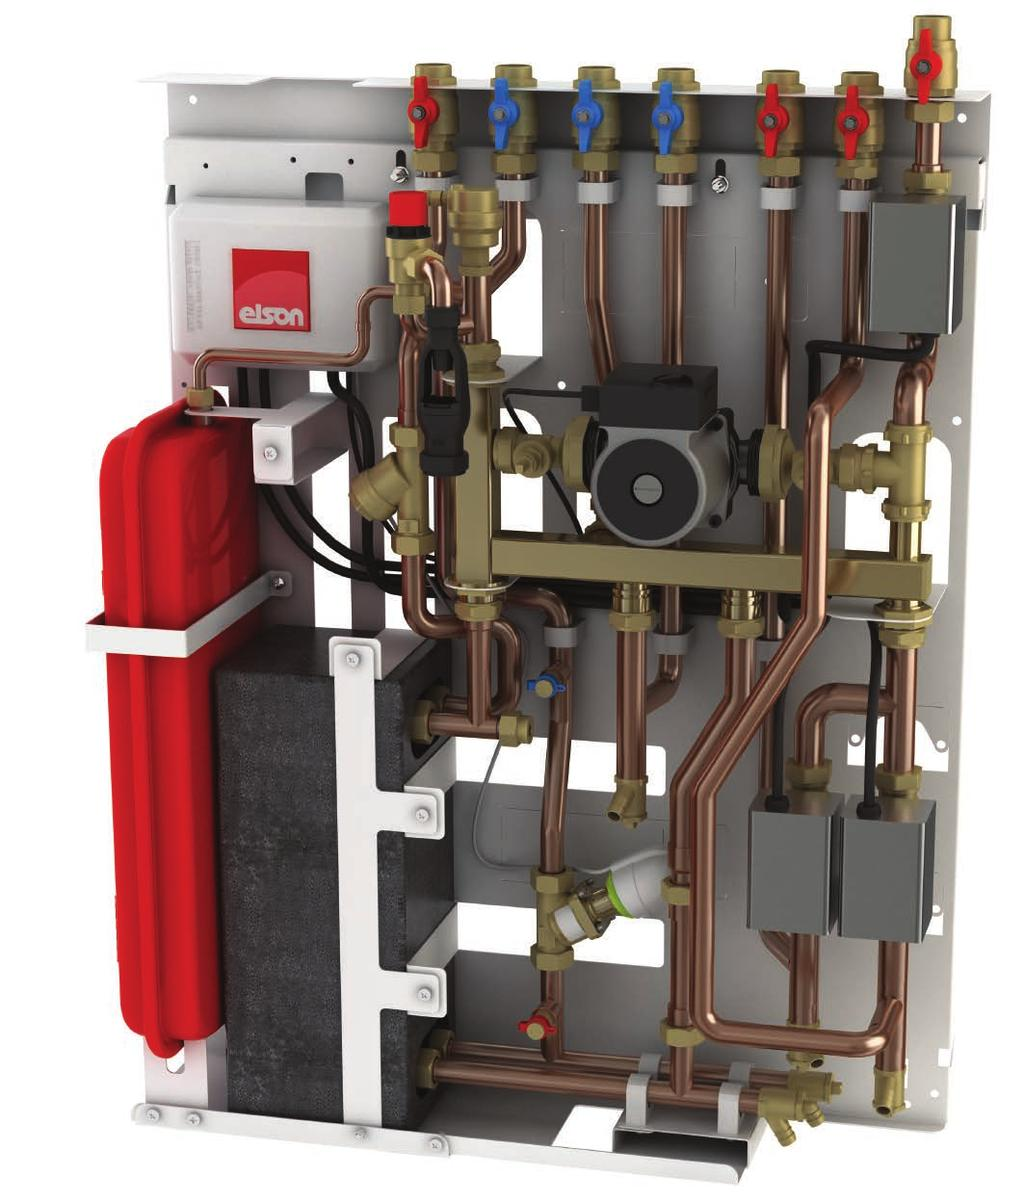 Stored Water District Heating Interface Units Product features 12 1 3 4 8 7 2 13 14 5